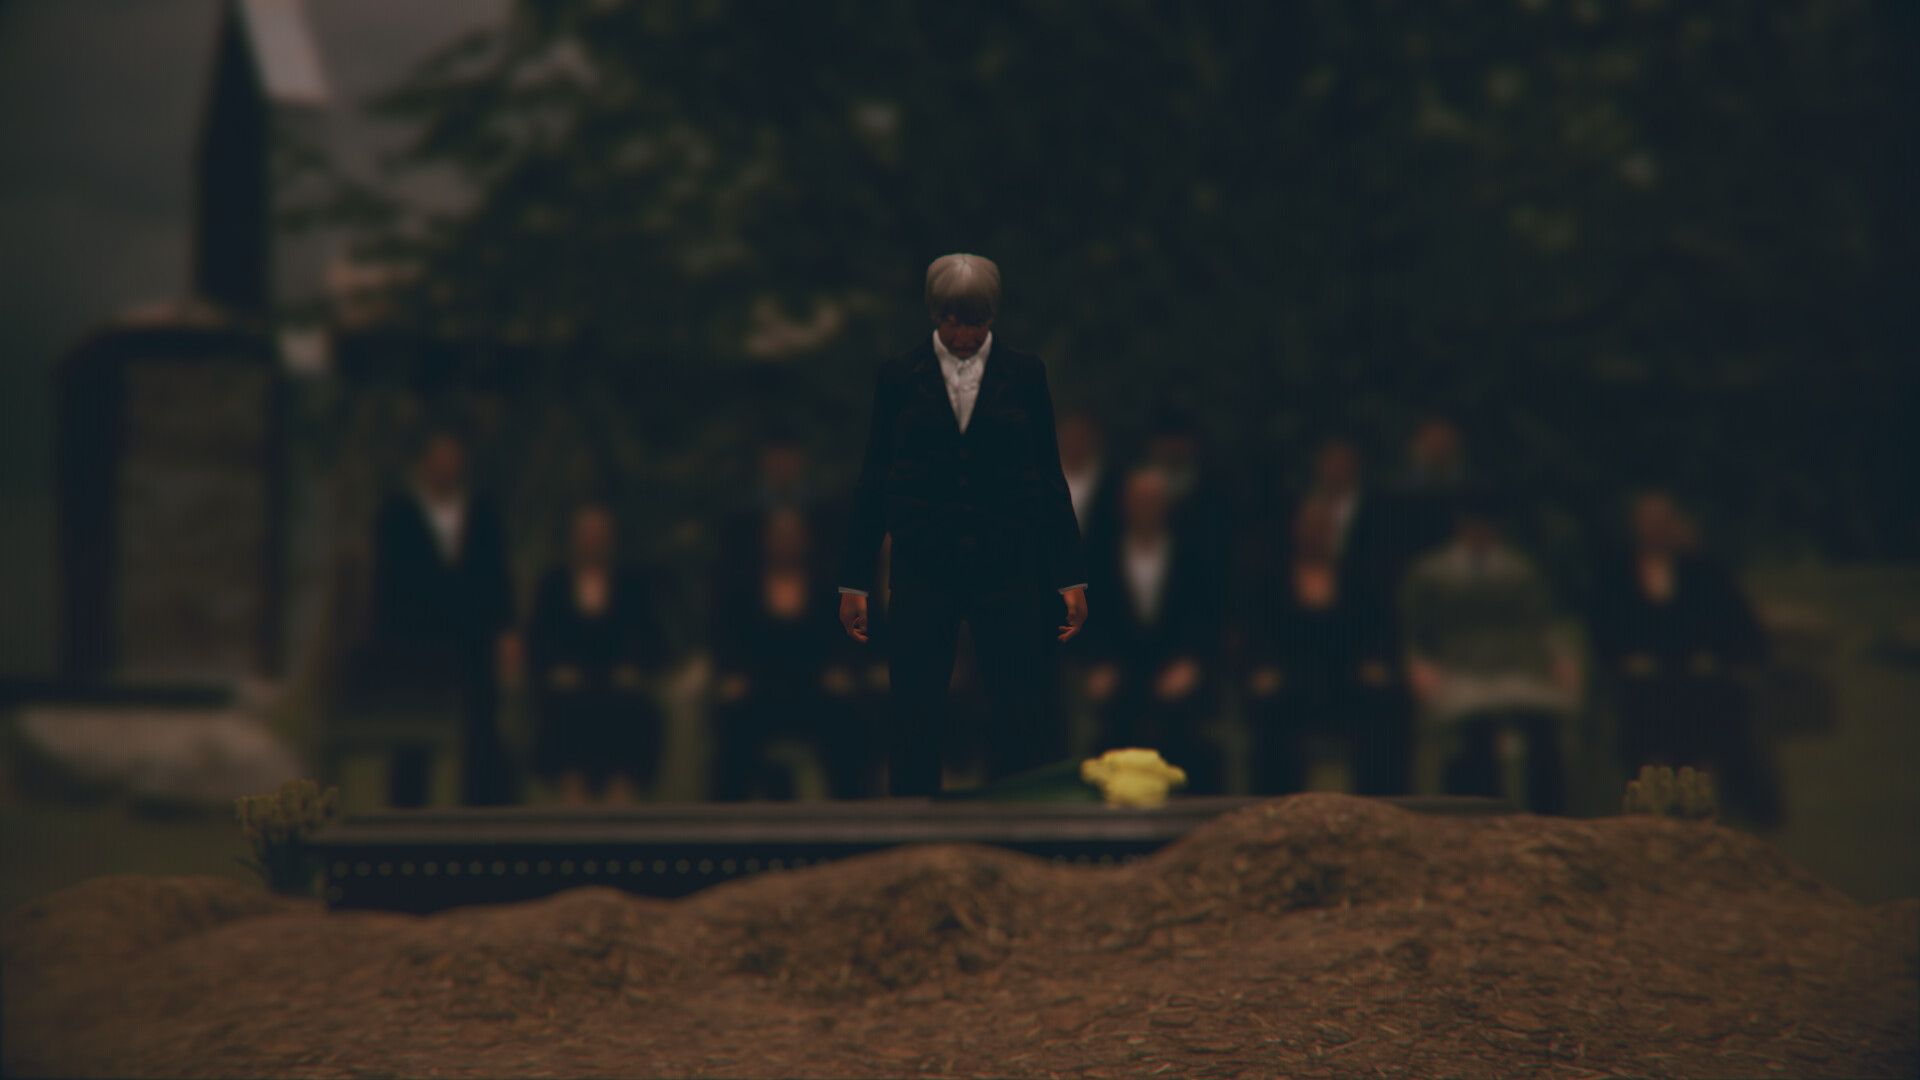 One of two funeral scenes from my new short animation project.